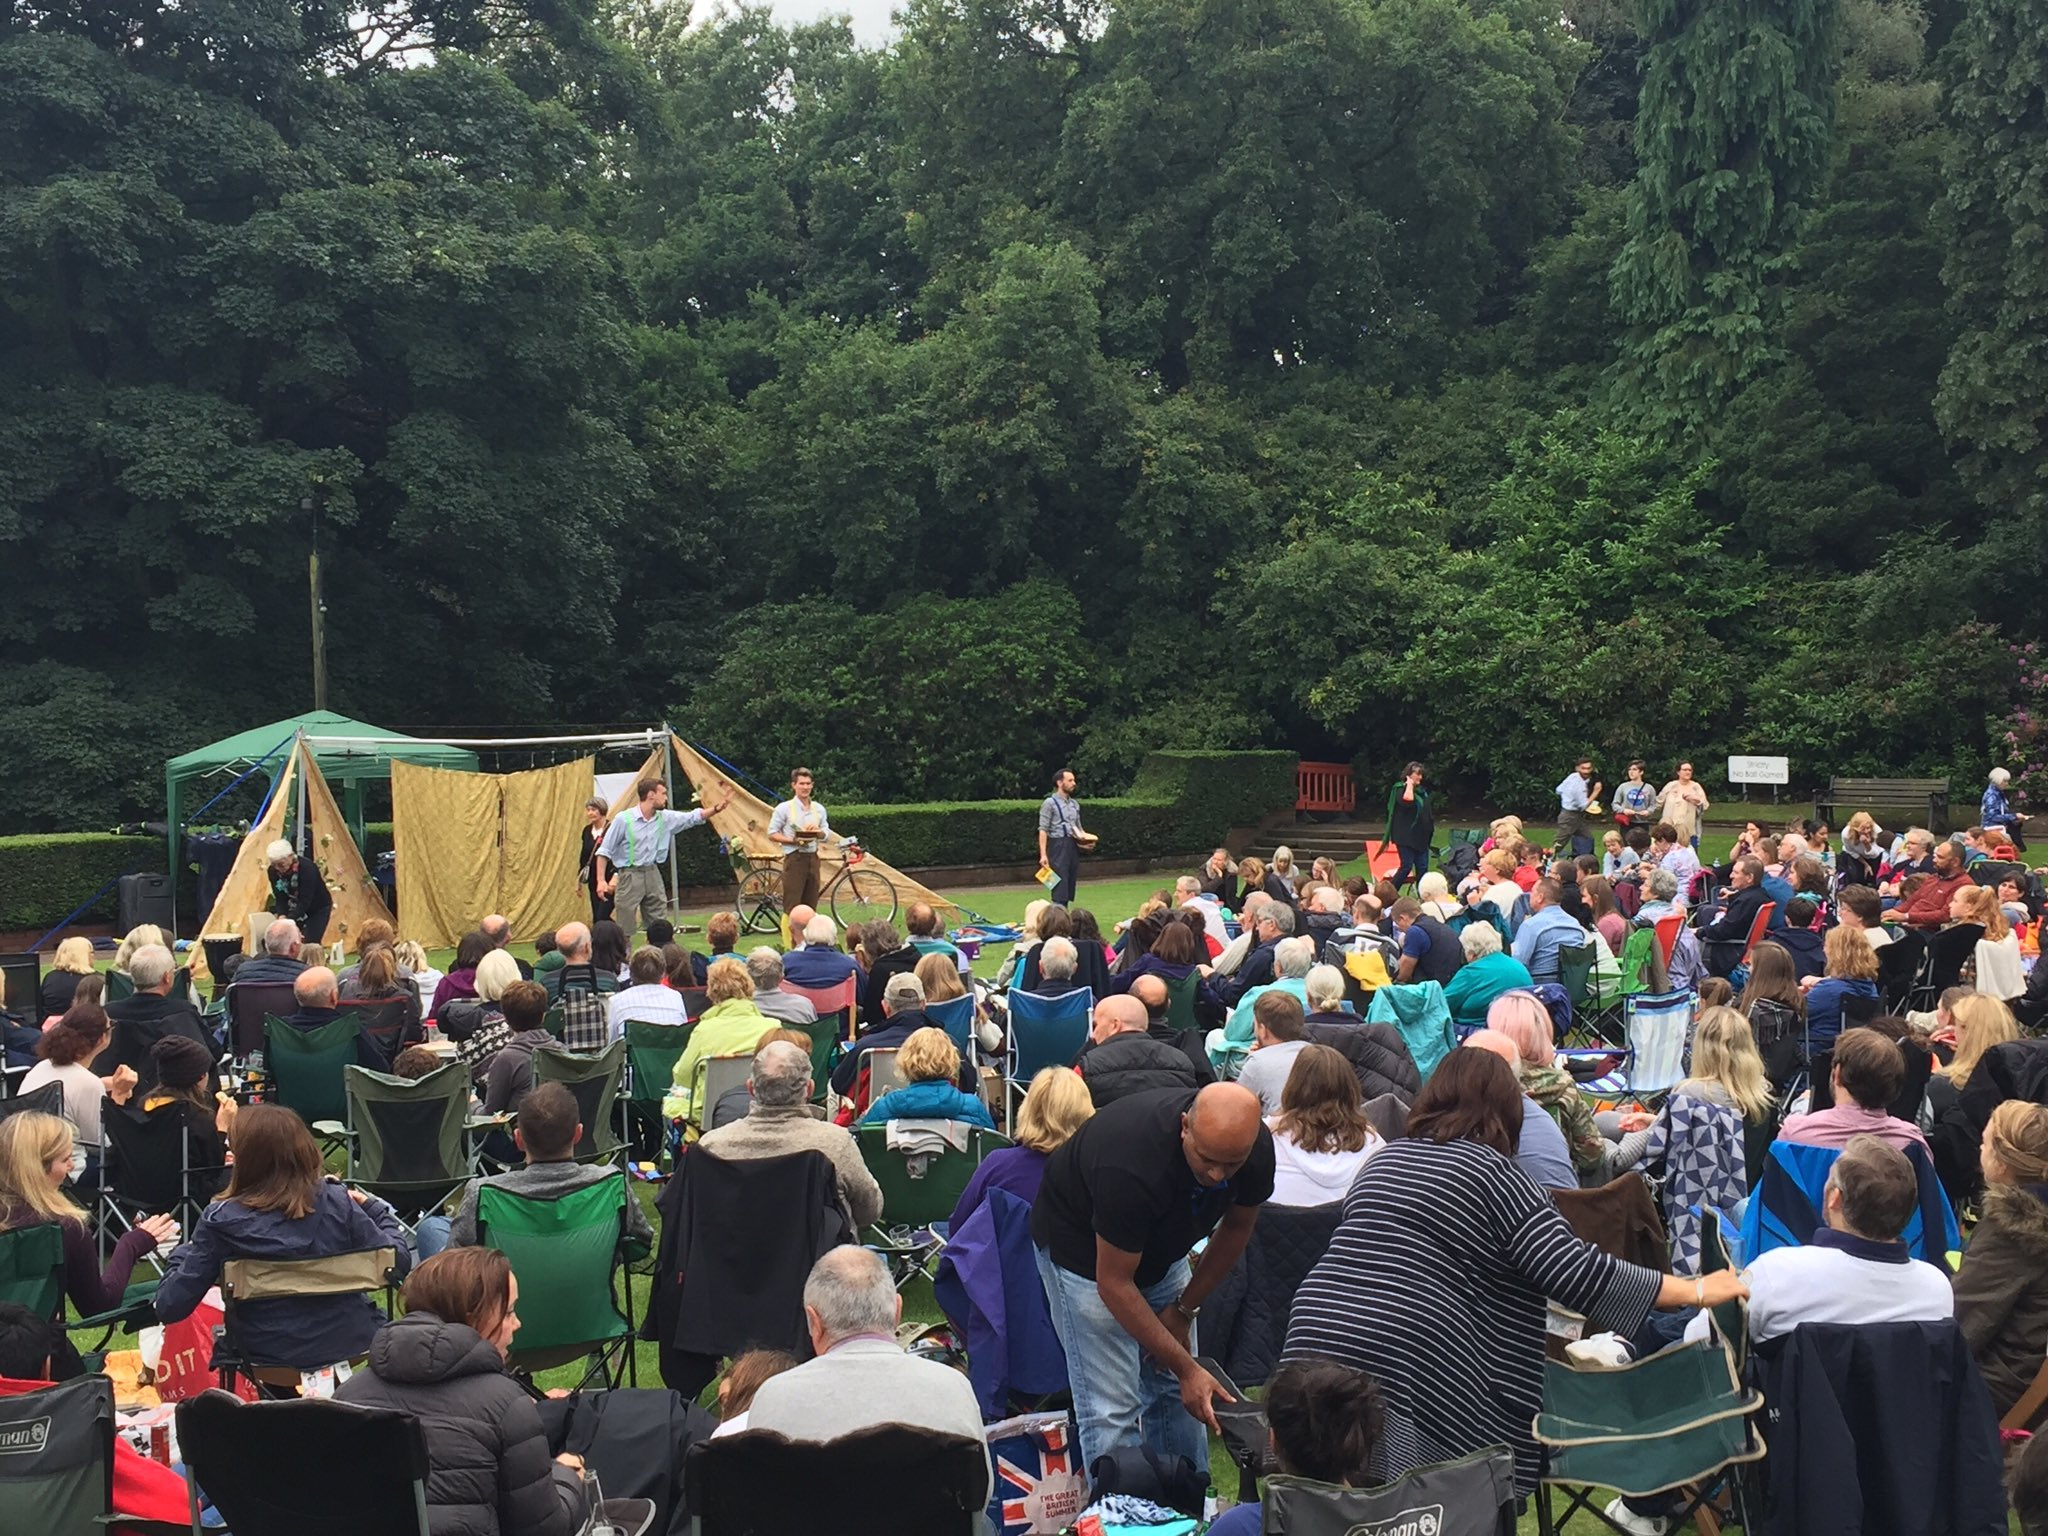 Thoroughly enjoyed @HandleBards production of Midsummer Night's Dream at Bramall Hall. Outdoor theatre delivered with energy and humour 🎭👍 https://t.co/ZgEFbPEilu